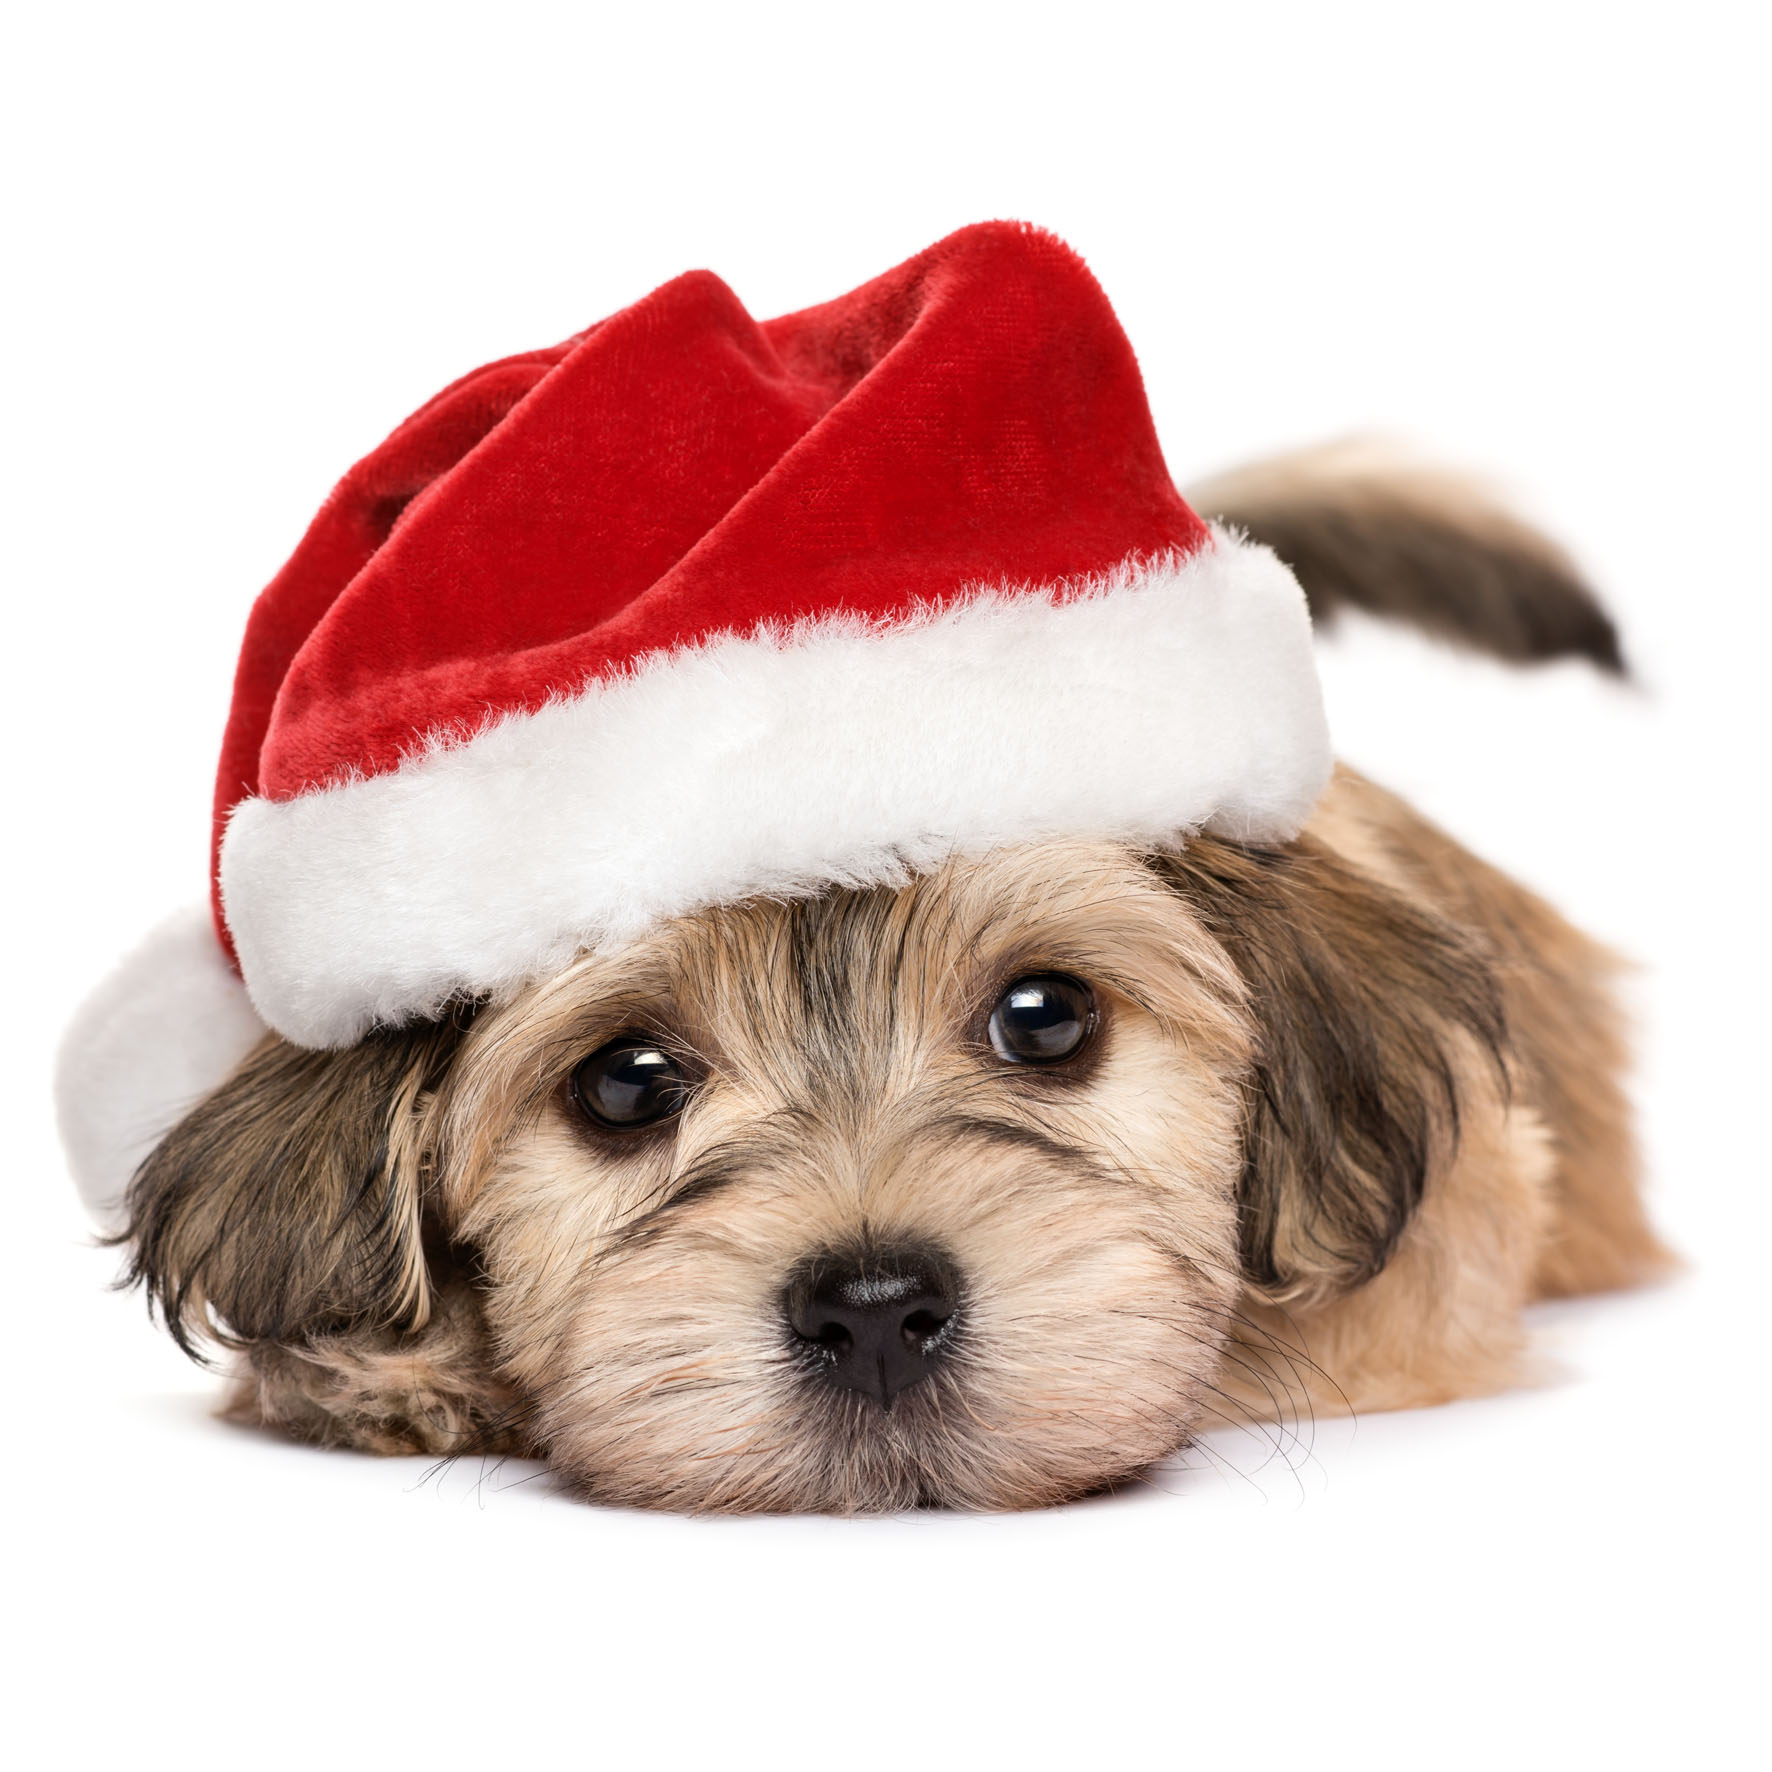 Cute Pup - Animal Christmas Cards Packs